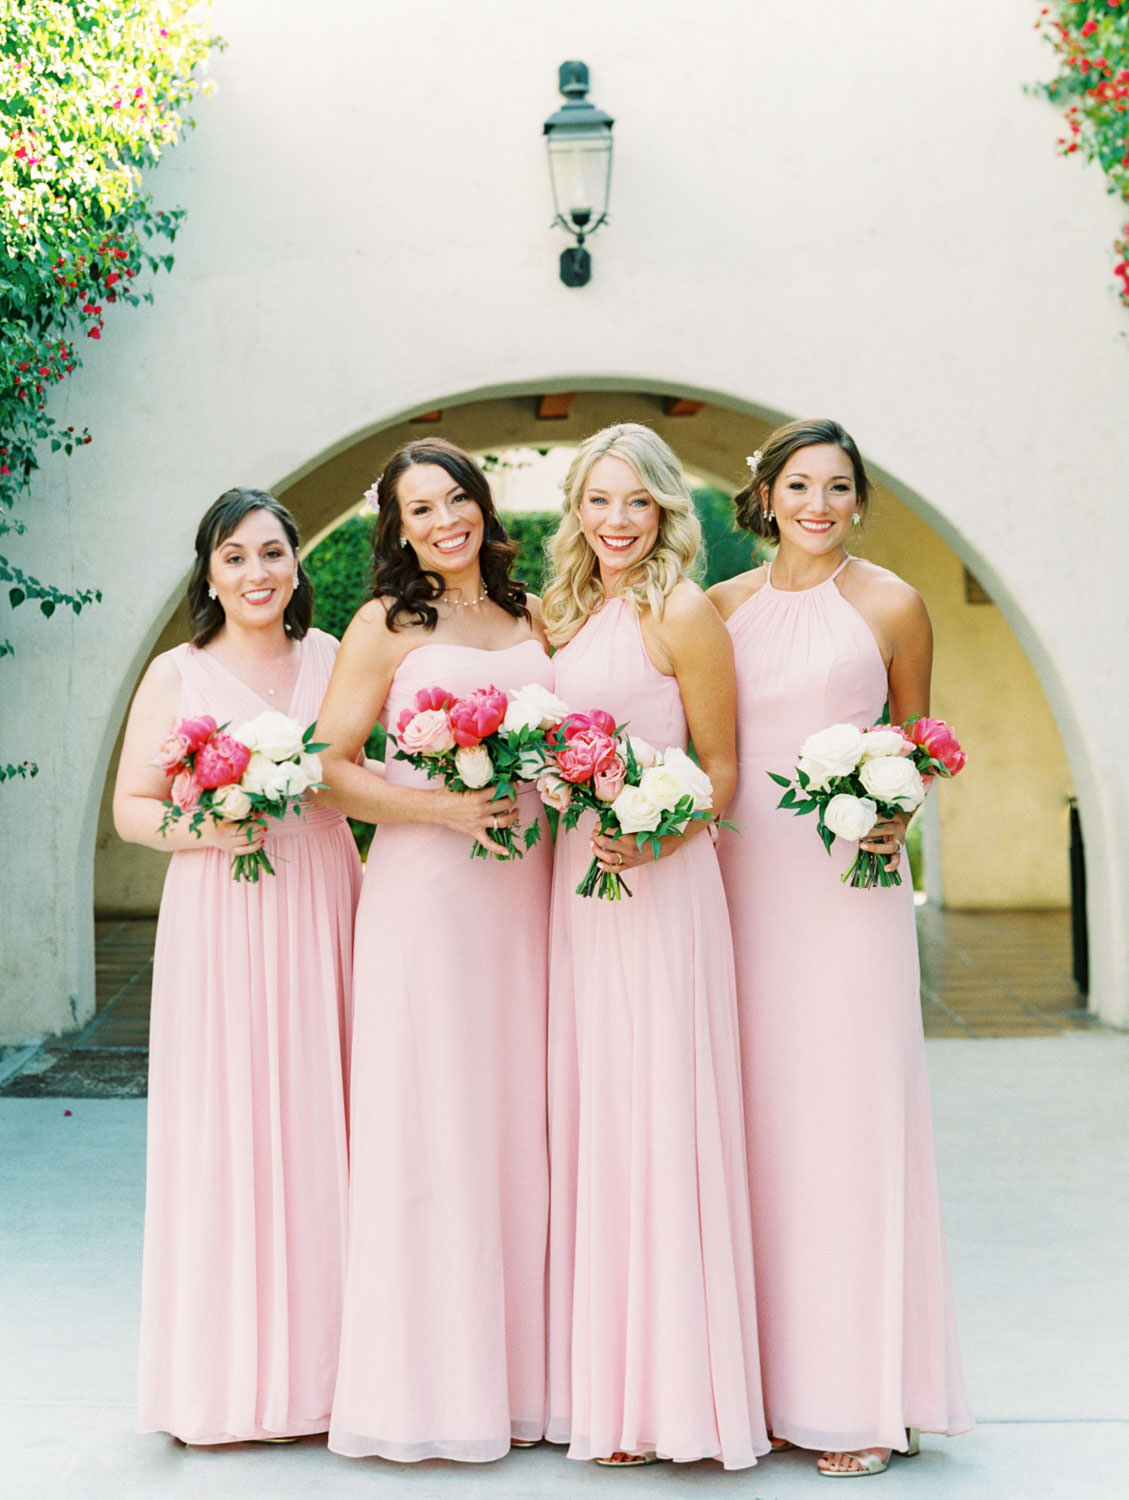 Bridal party portrait of bridesmaids in pink dresses carrying bouquets of pink tones with peonies and roses. Miramonte Resort wedding. Film photography by Cavin Elizabeth.